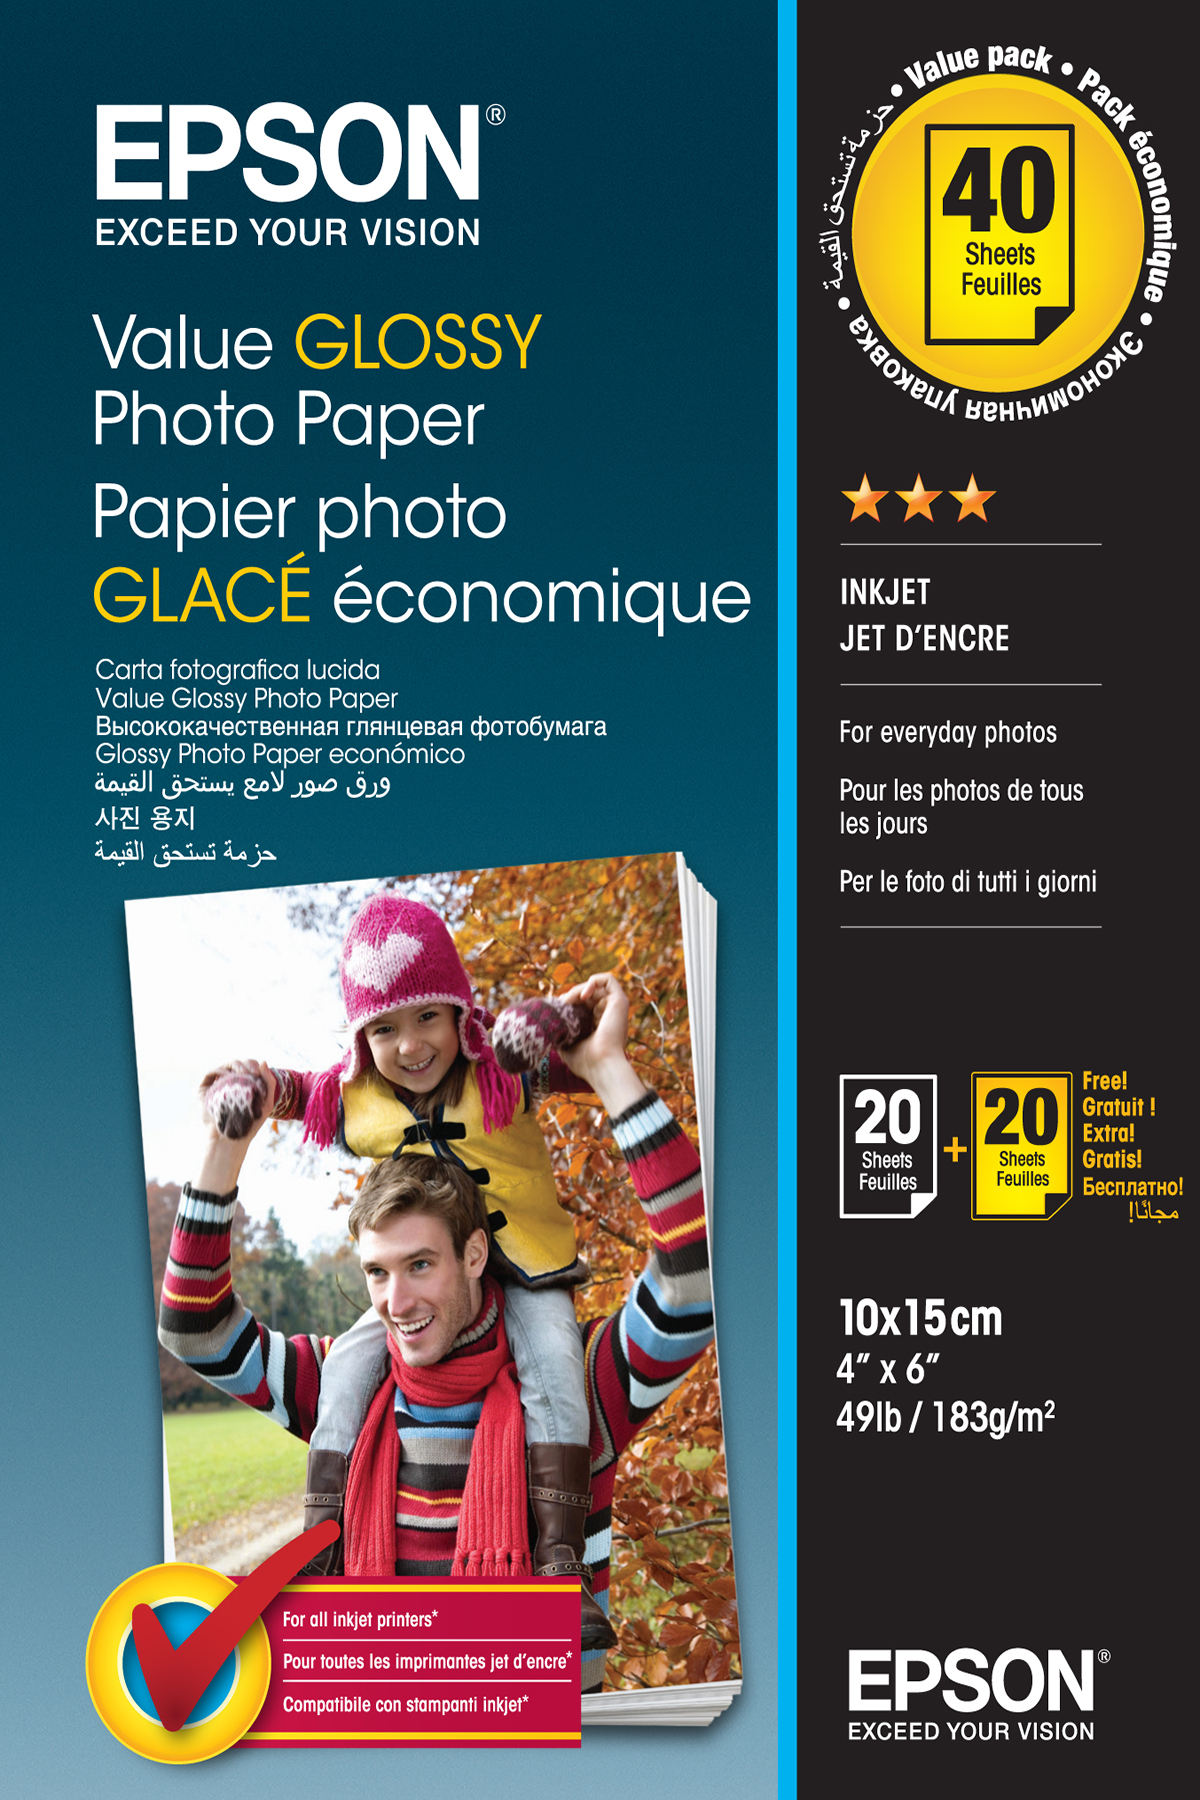 Epson Value Glossy Photo Paper - 10x15cm - 2x 20 sheets (BOGOF)